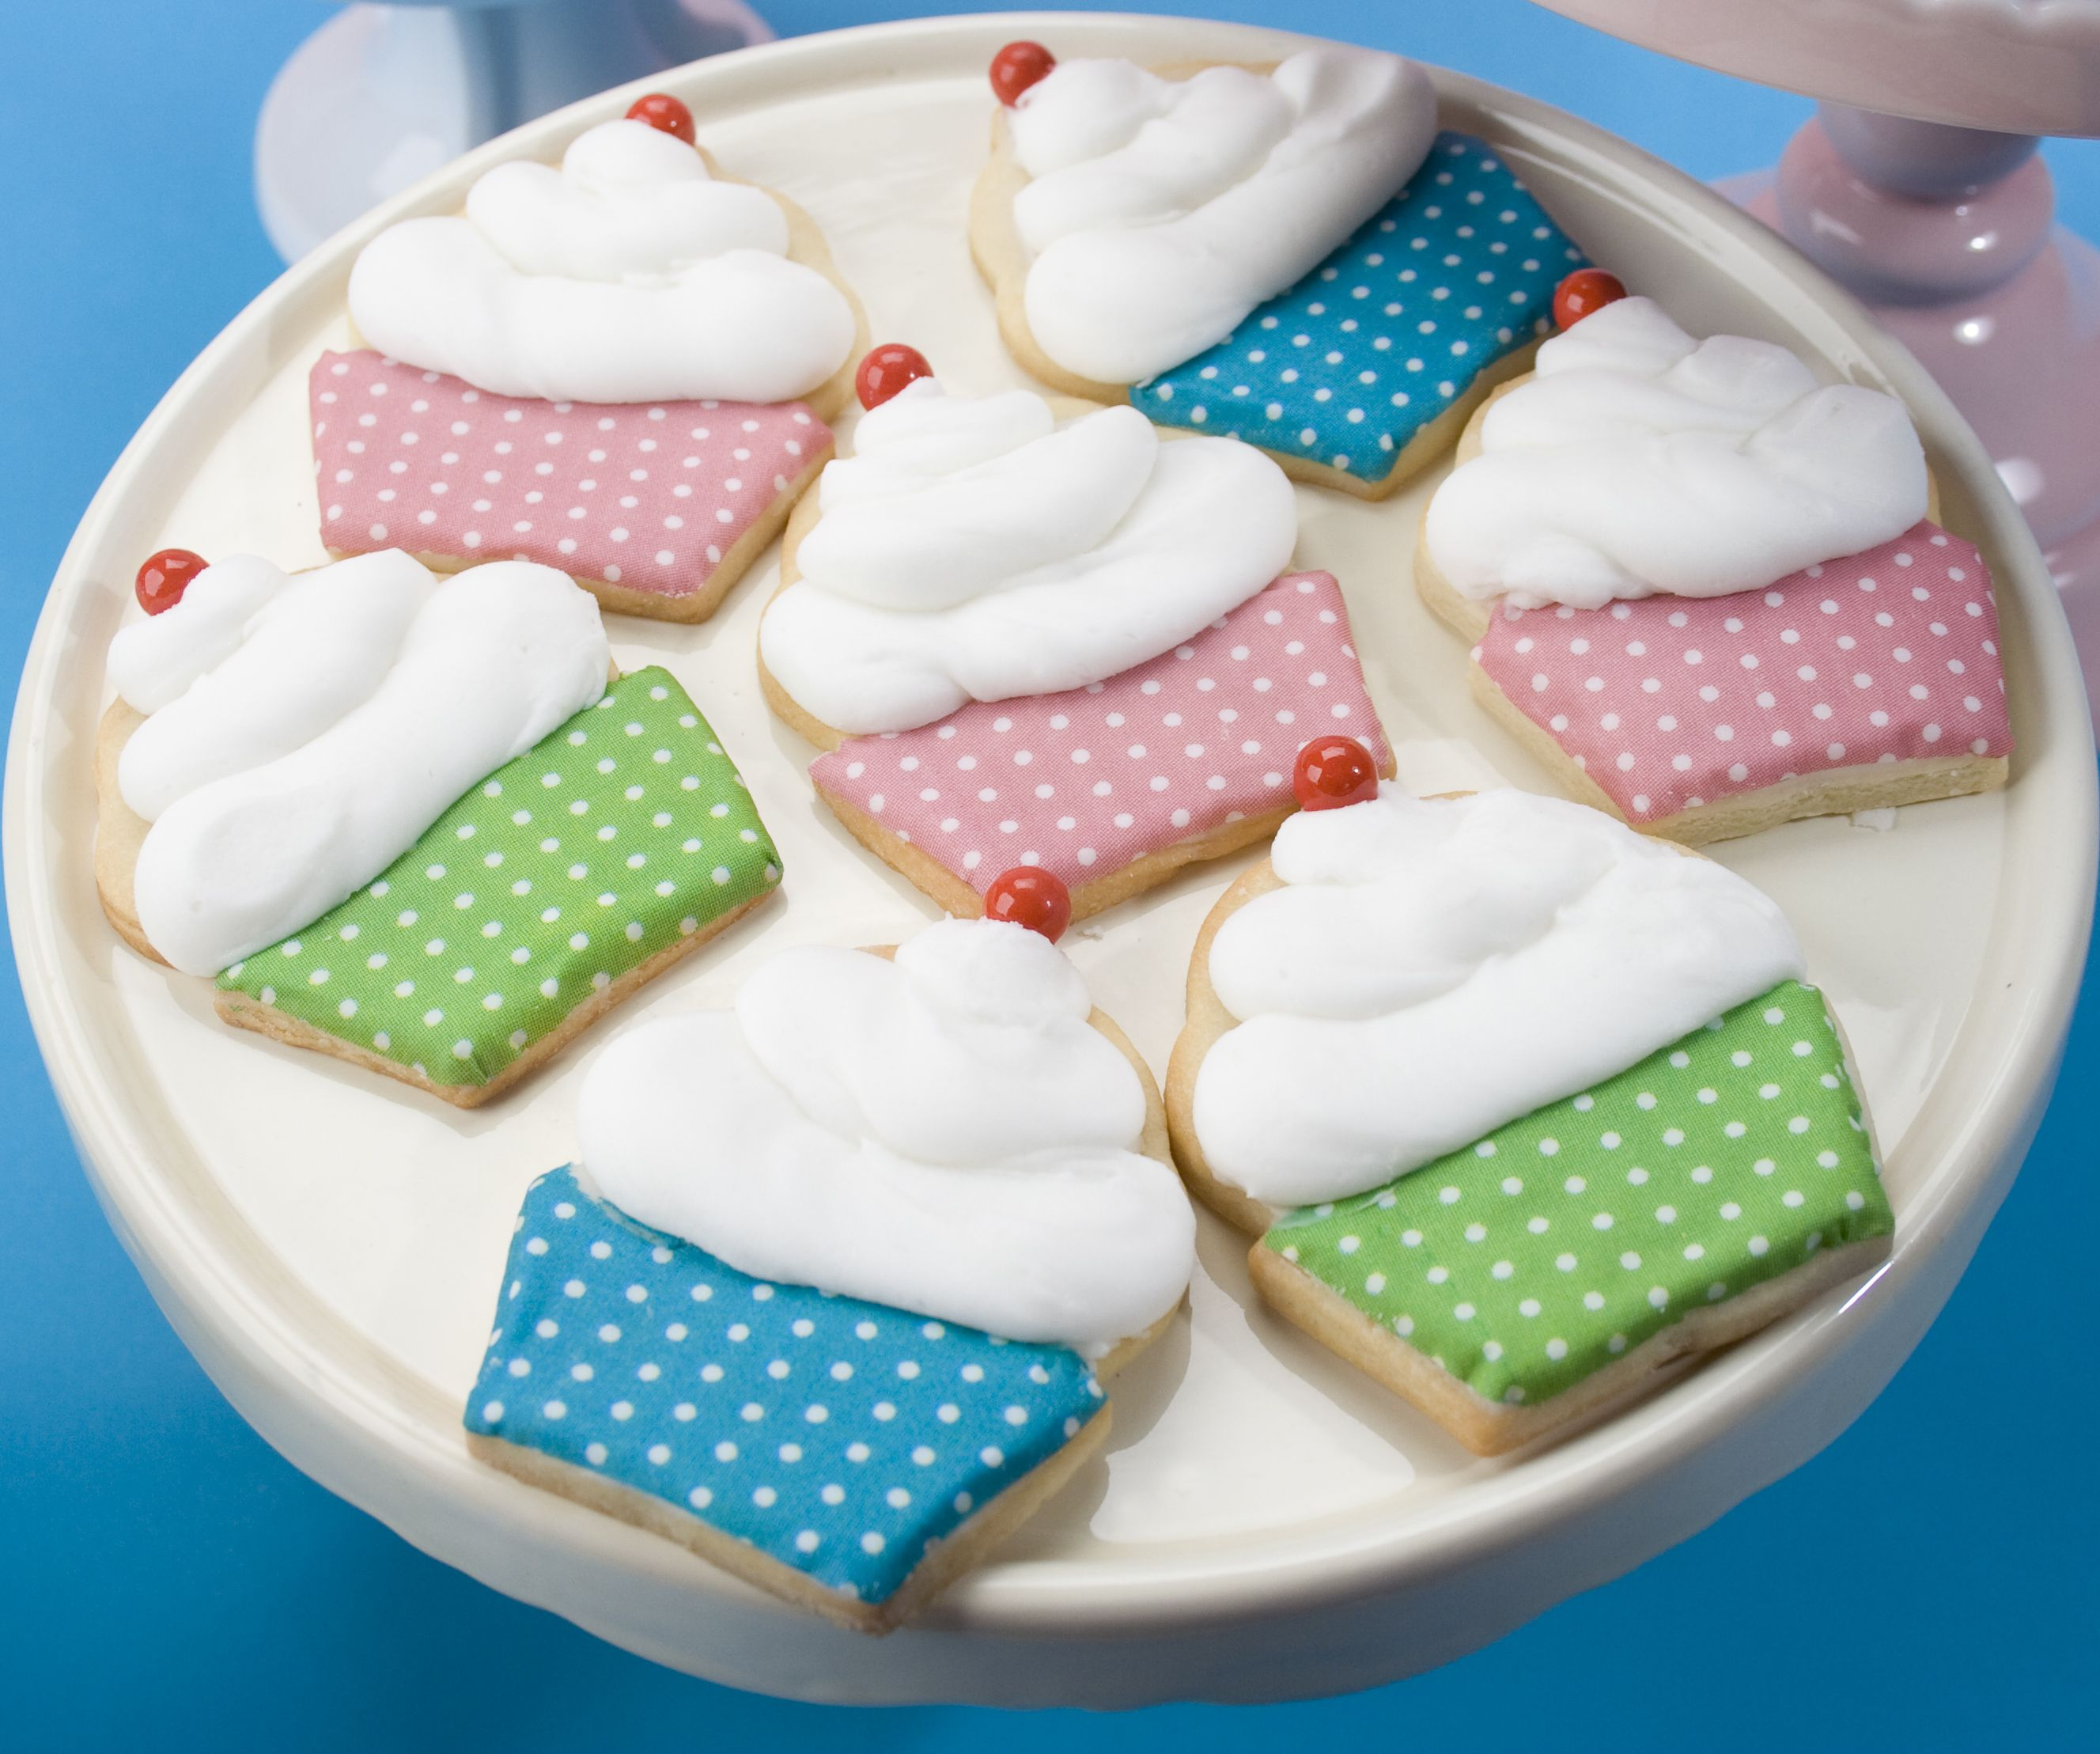 Cookie decorating party ideas - Cupcake Birthday Party Theme